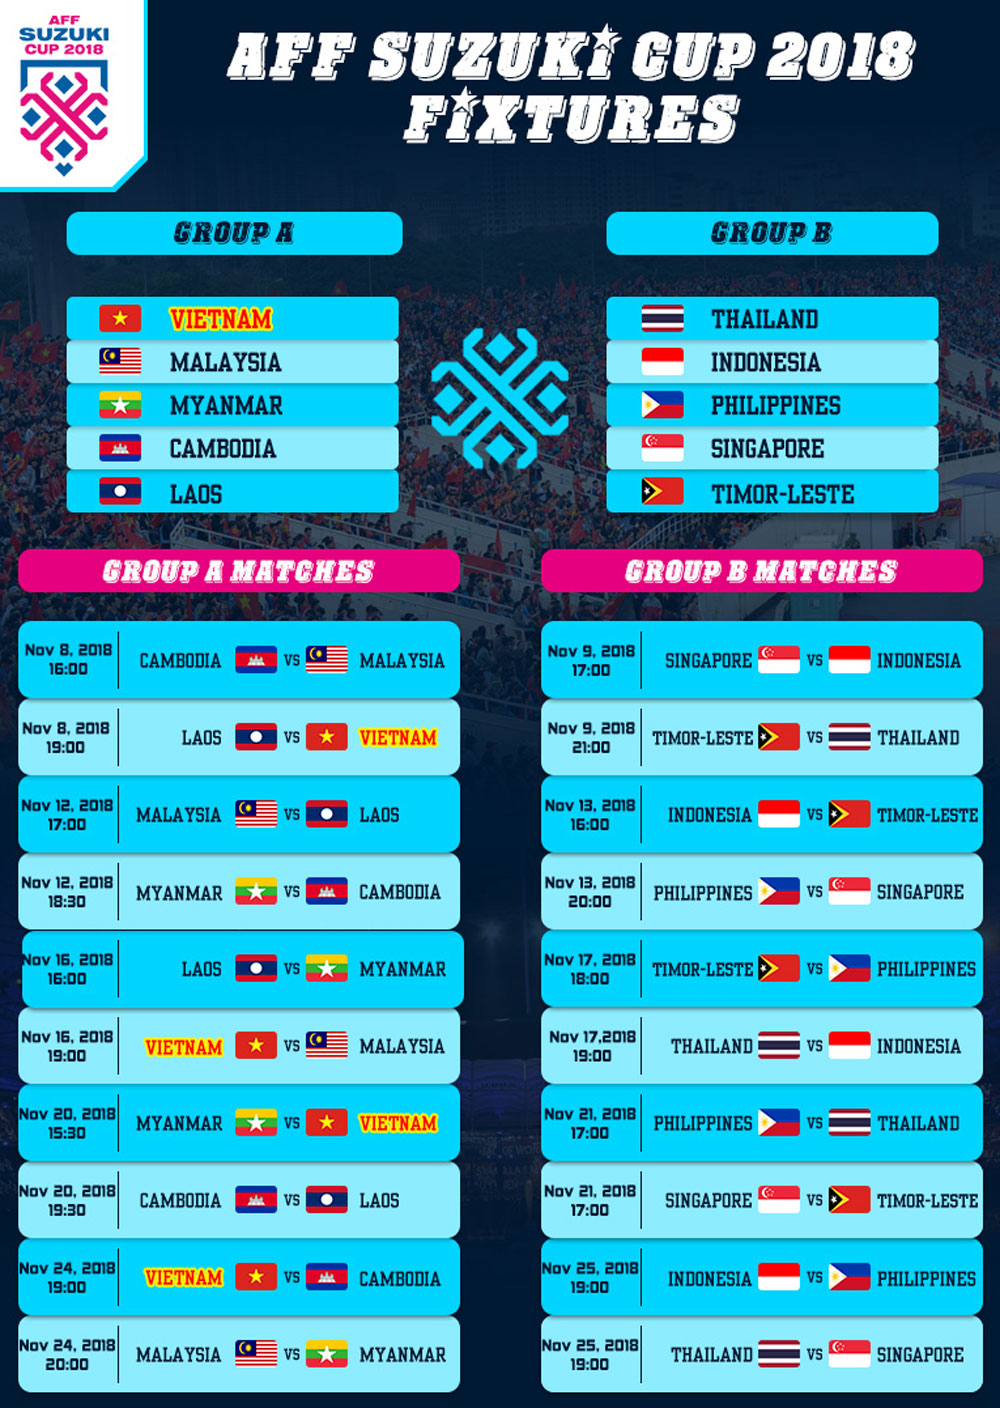 AFF, Suzuki Cup 2018, match schedule, AFF Championship, Southeast Asian teams, full schedule